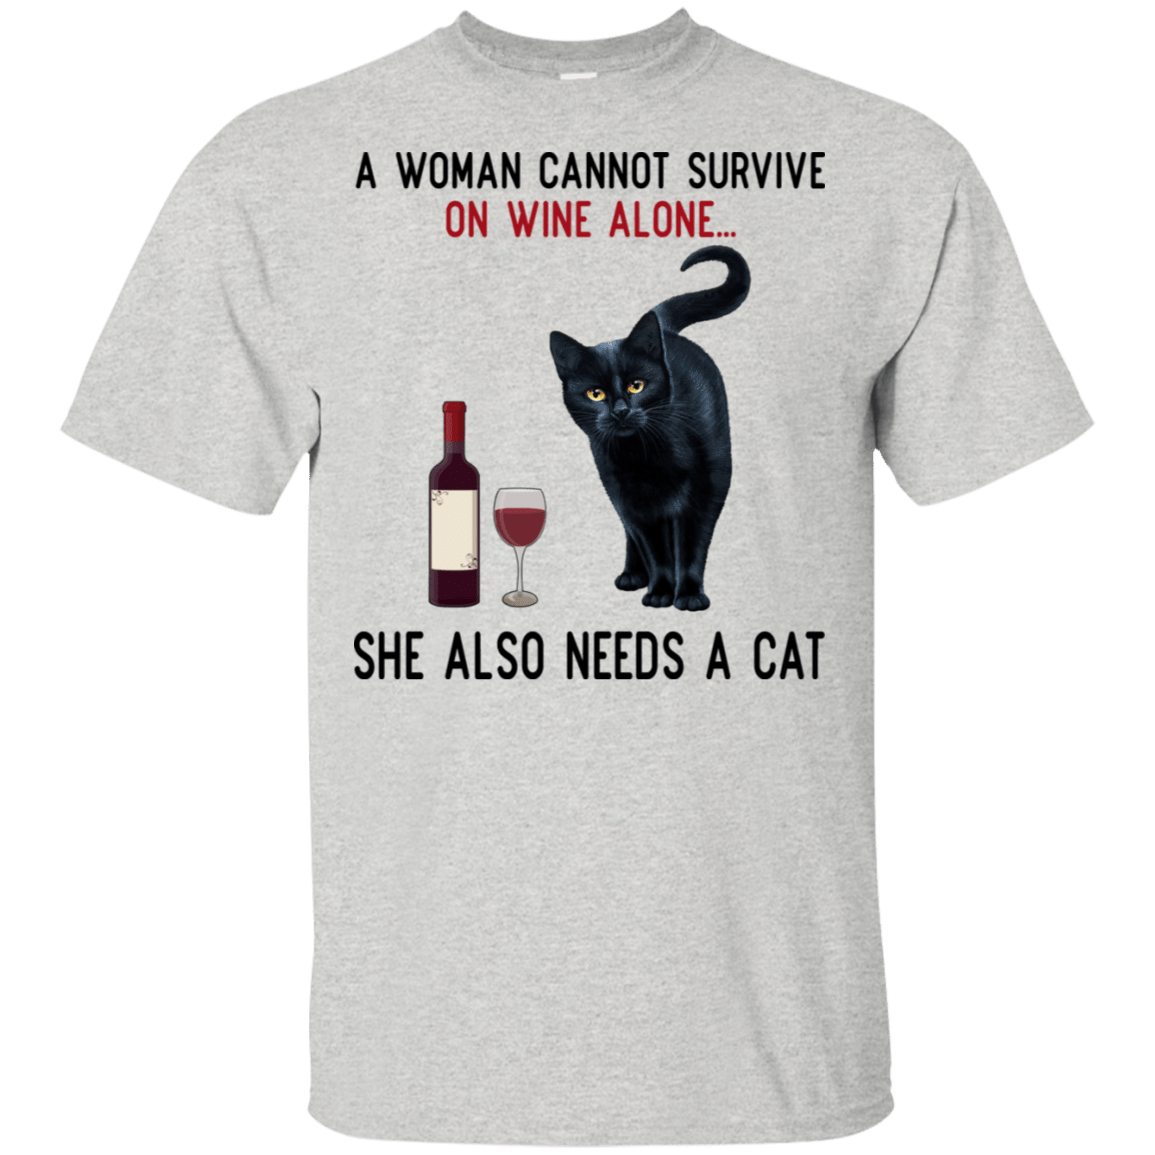 A Woman Cannot Survive On Wine Alone She Also Need A Cat T-Shirts, Hoodies 22-2475-77528896-12568 - Tee Ript